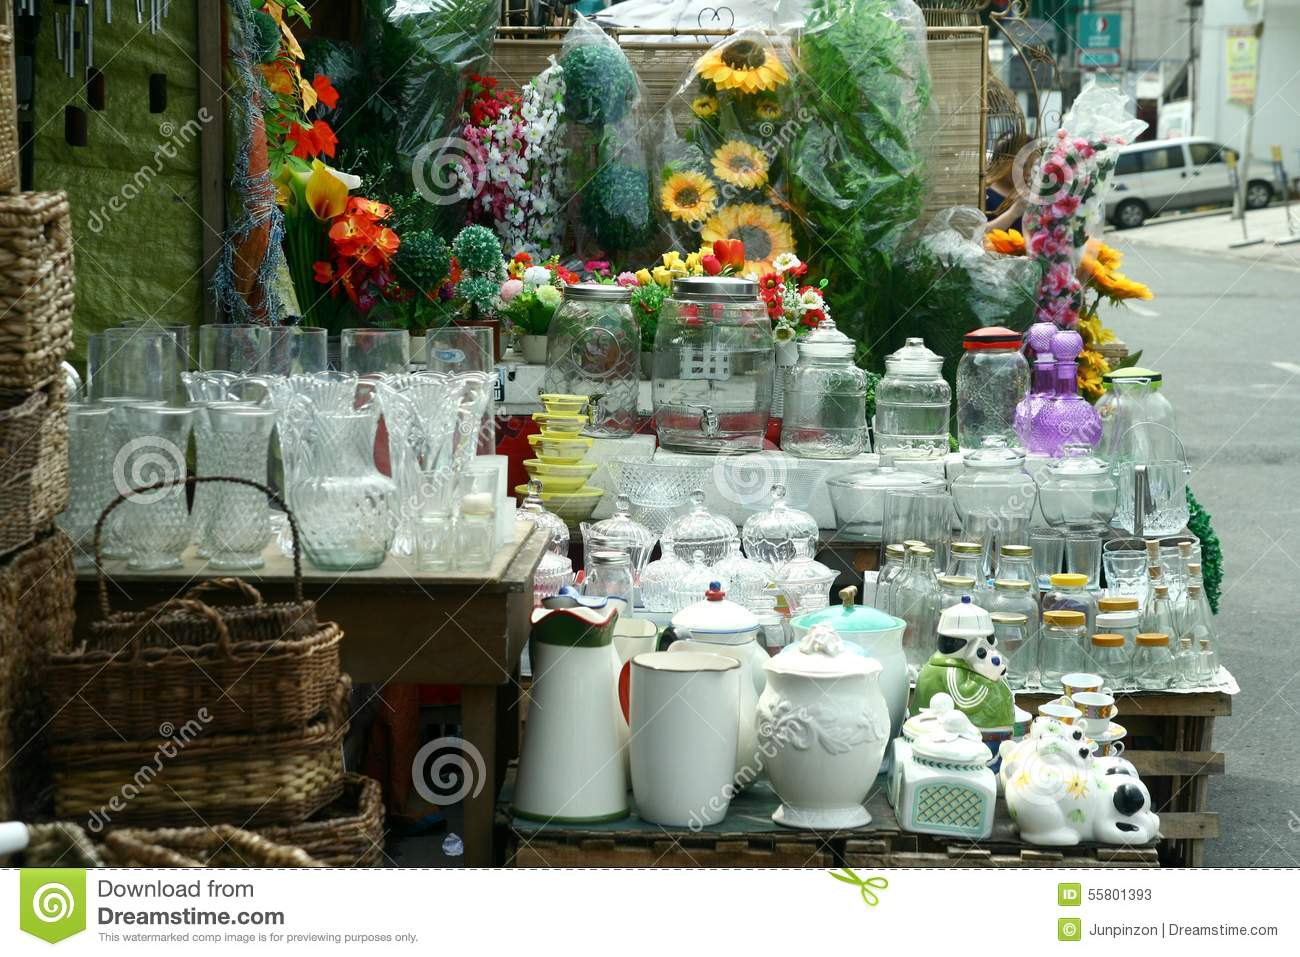 Glassware Sold At A Store In Dapitan Arcade In Manila Philippines Editorial Stock Photo Image